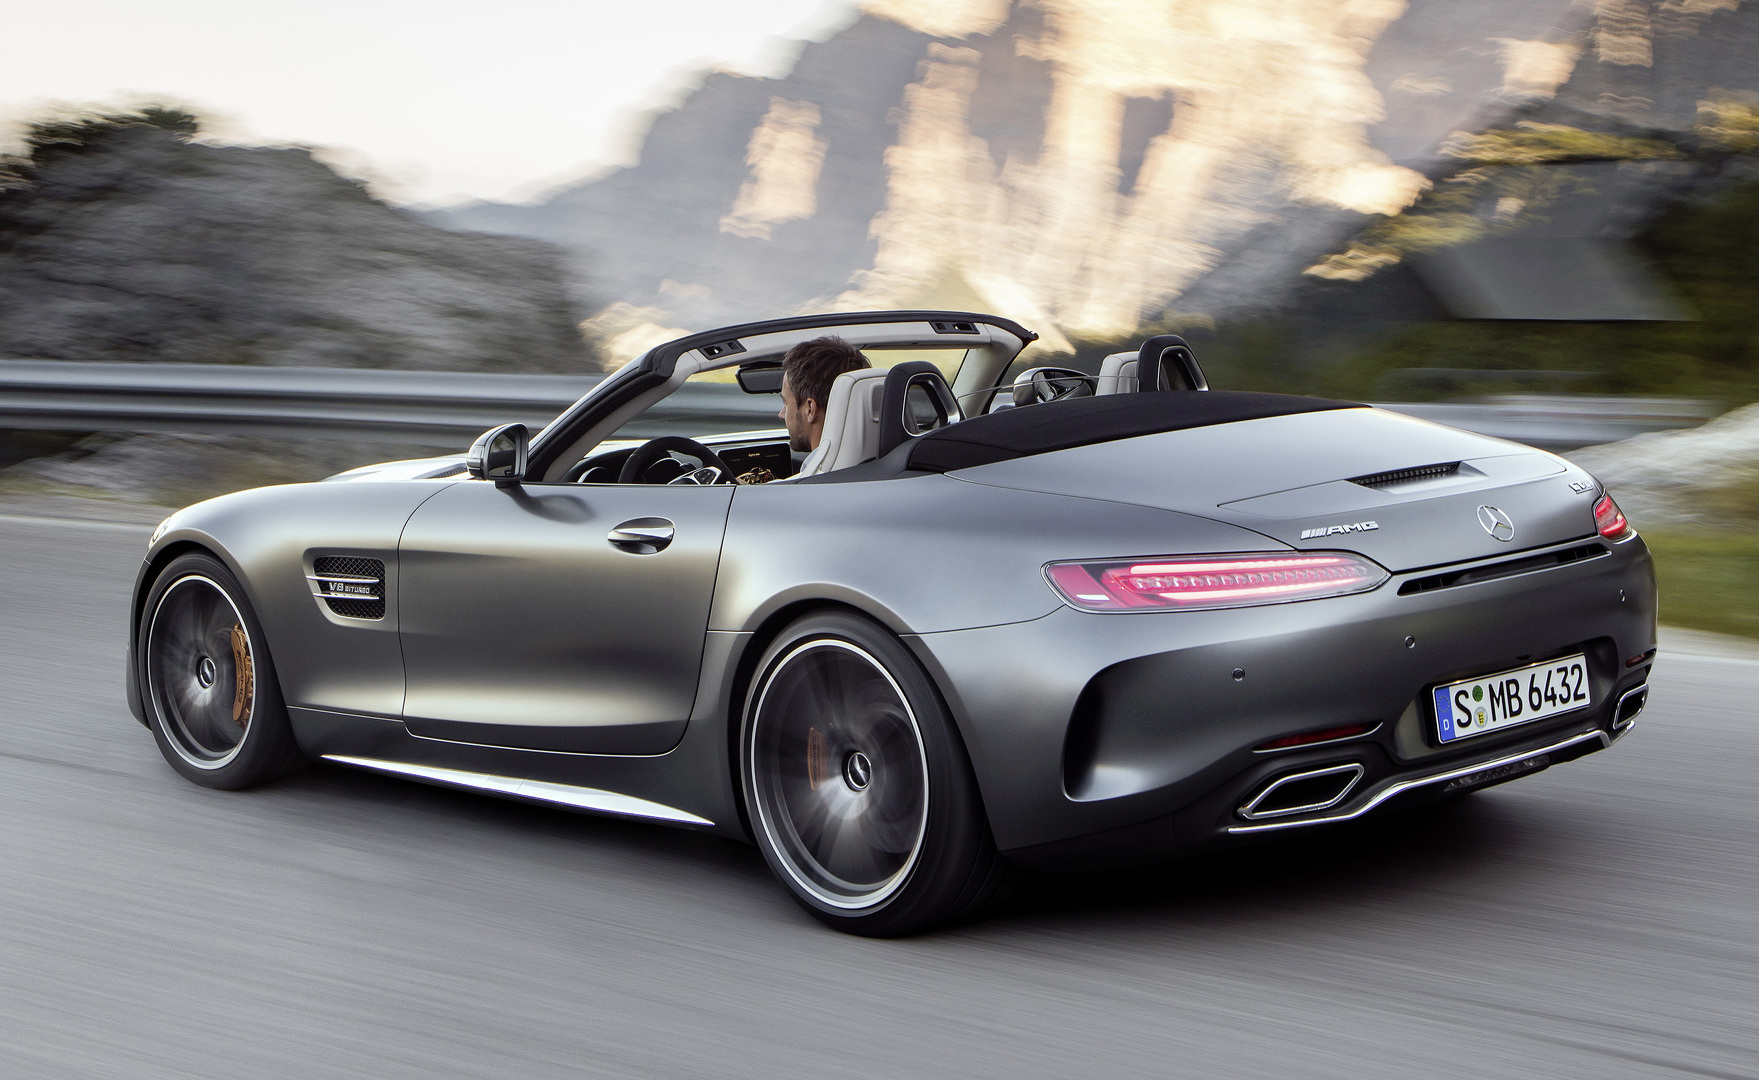 Mercedes Amg Gt C Roadster Revealed As New Drop Top Sports